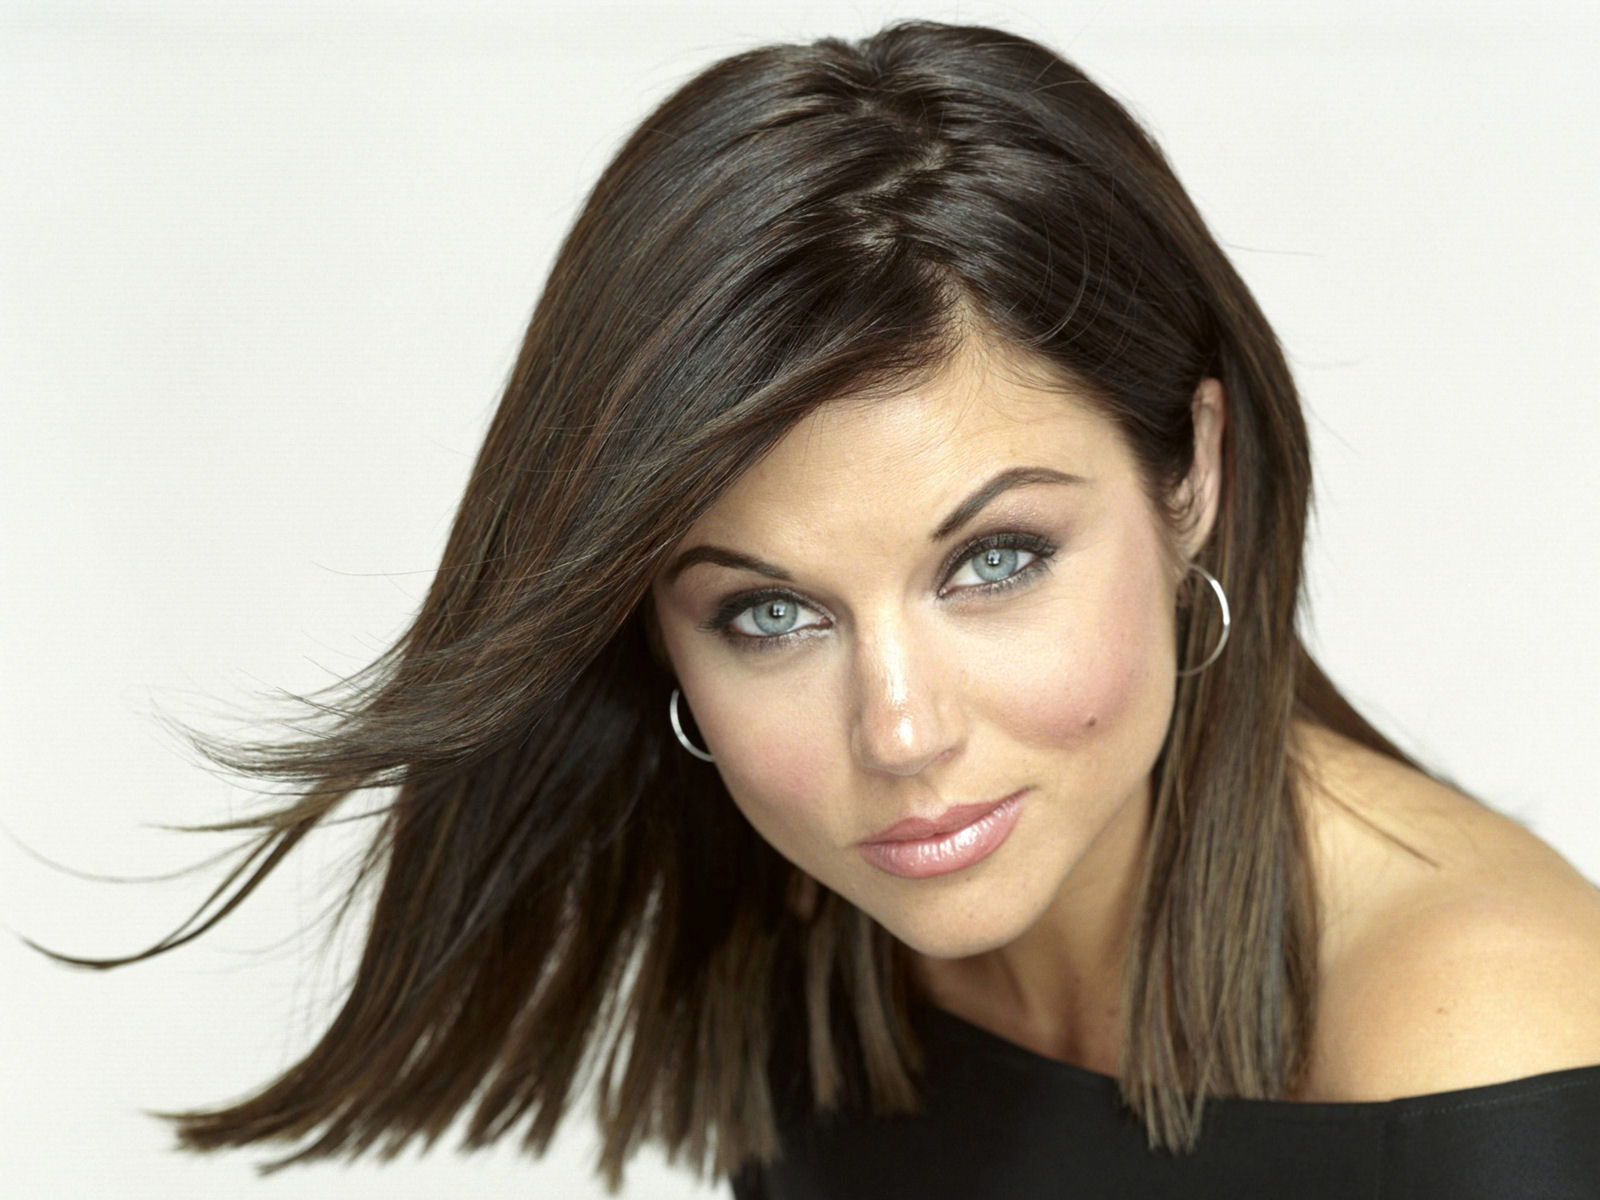 Tiffani thiessen Wallpaper 6 With 1600 x 1200 Resolution ( 223kB )